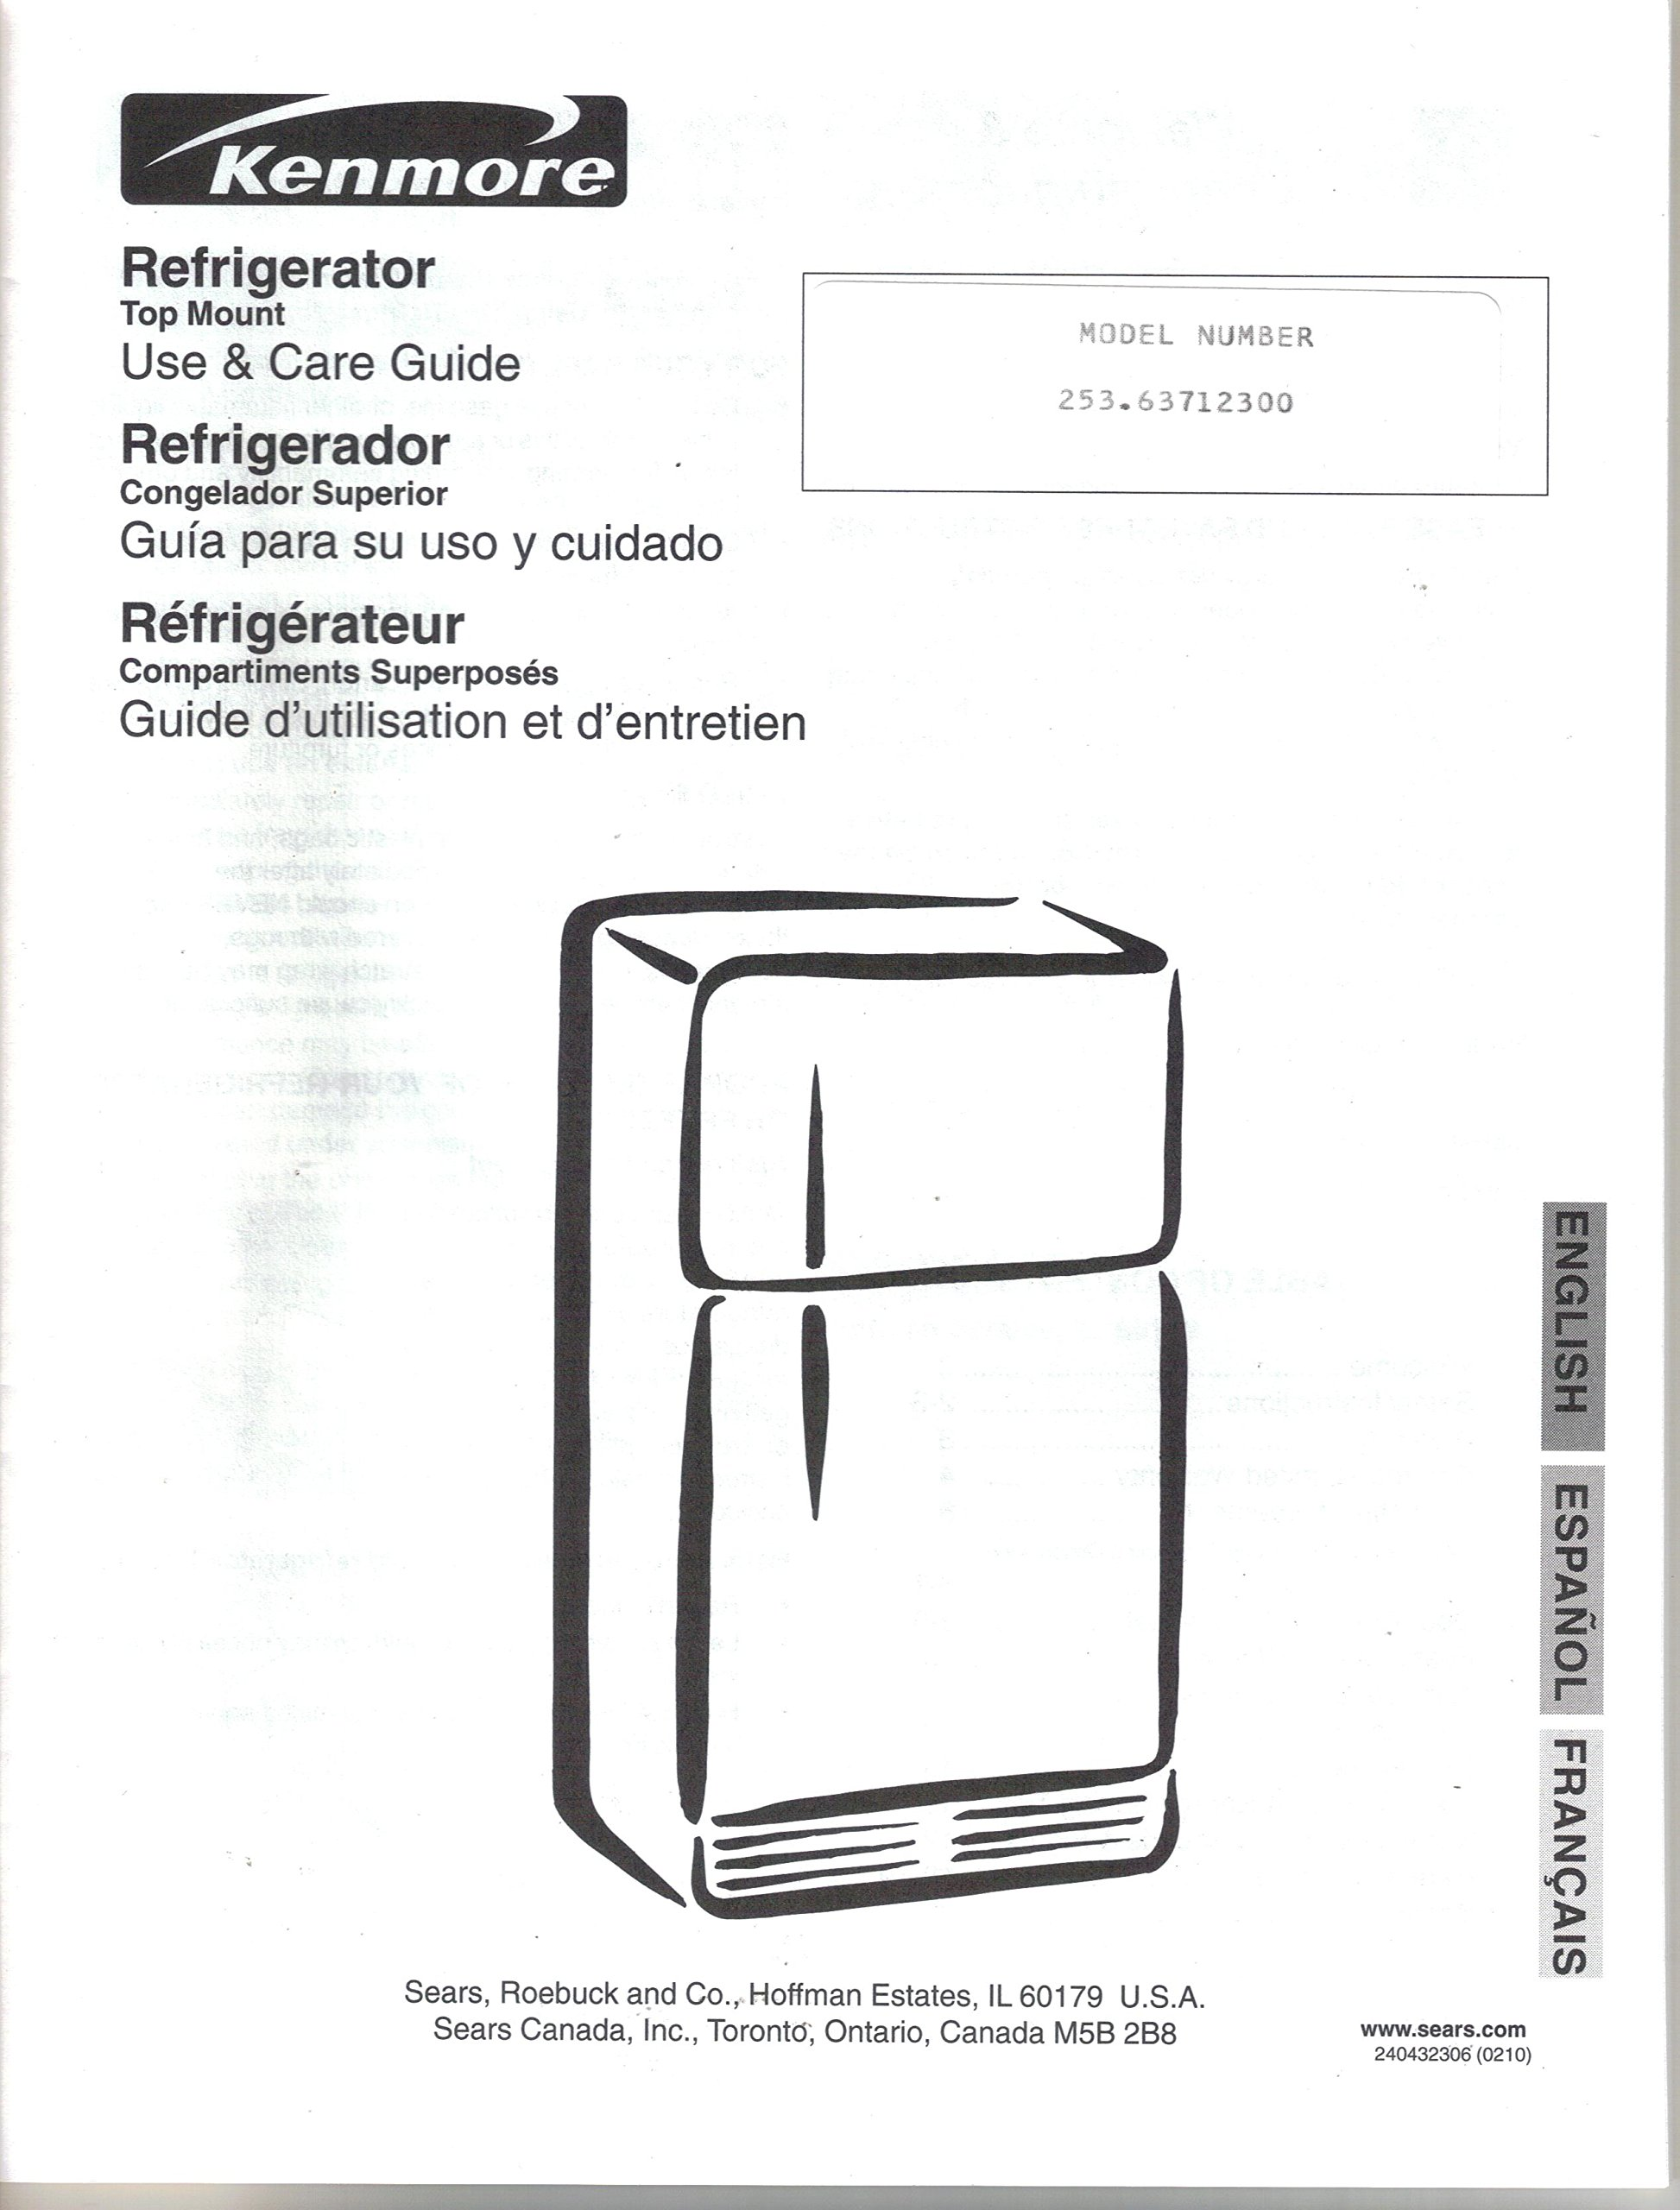 sears kenmore refrigerator owners manual use care guide instruction rh amazon com Kenmore Elite Refrigerator Kenmore Refrigerator Model Numbers